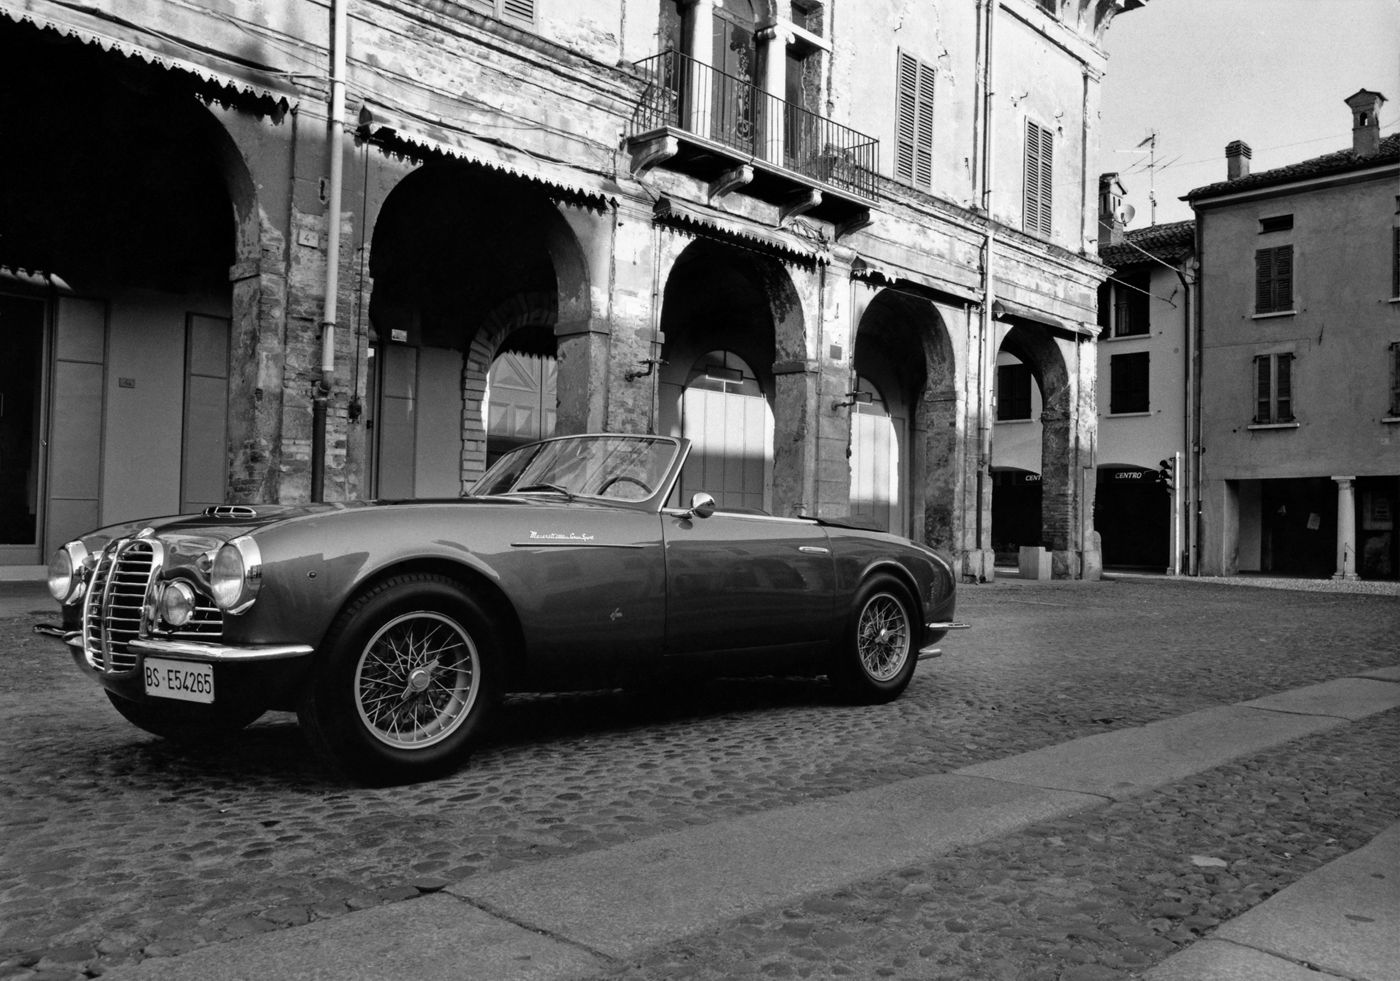 1950 Maserati A6G 2000 - the classic sports car model on Italian street